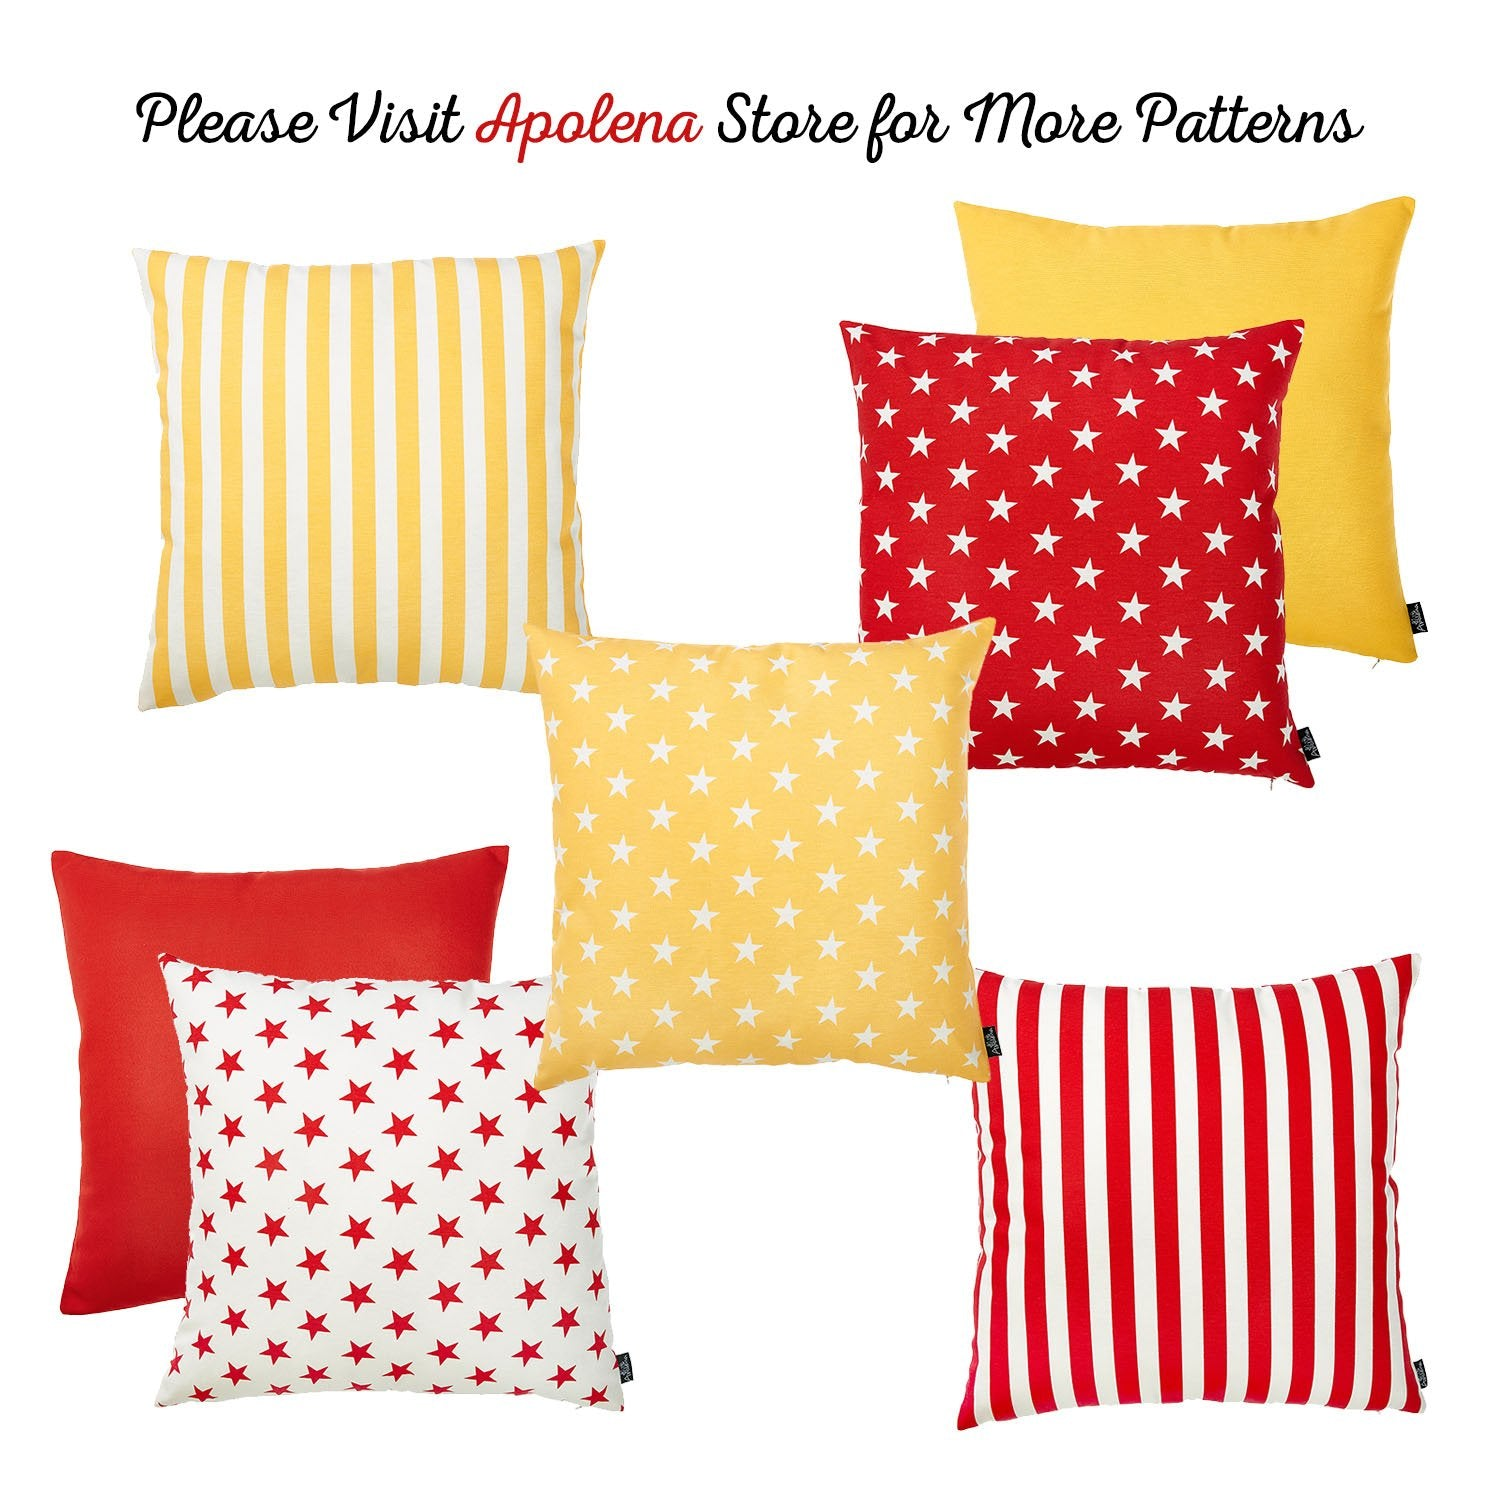 Easy Care Red Stripes Decorative Throw Pillow Cover Apolena